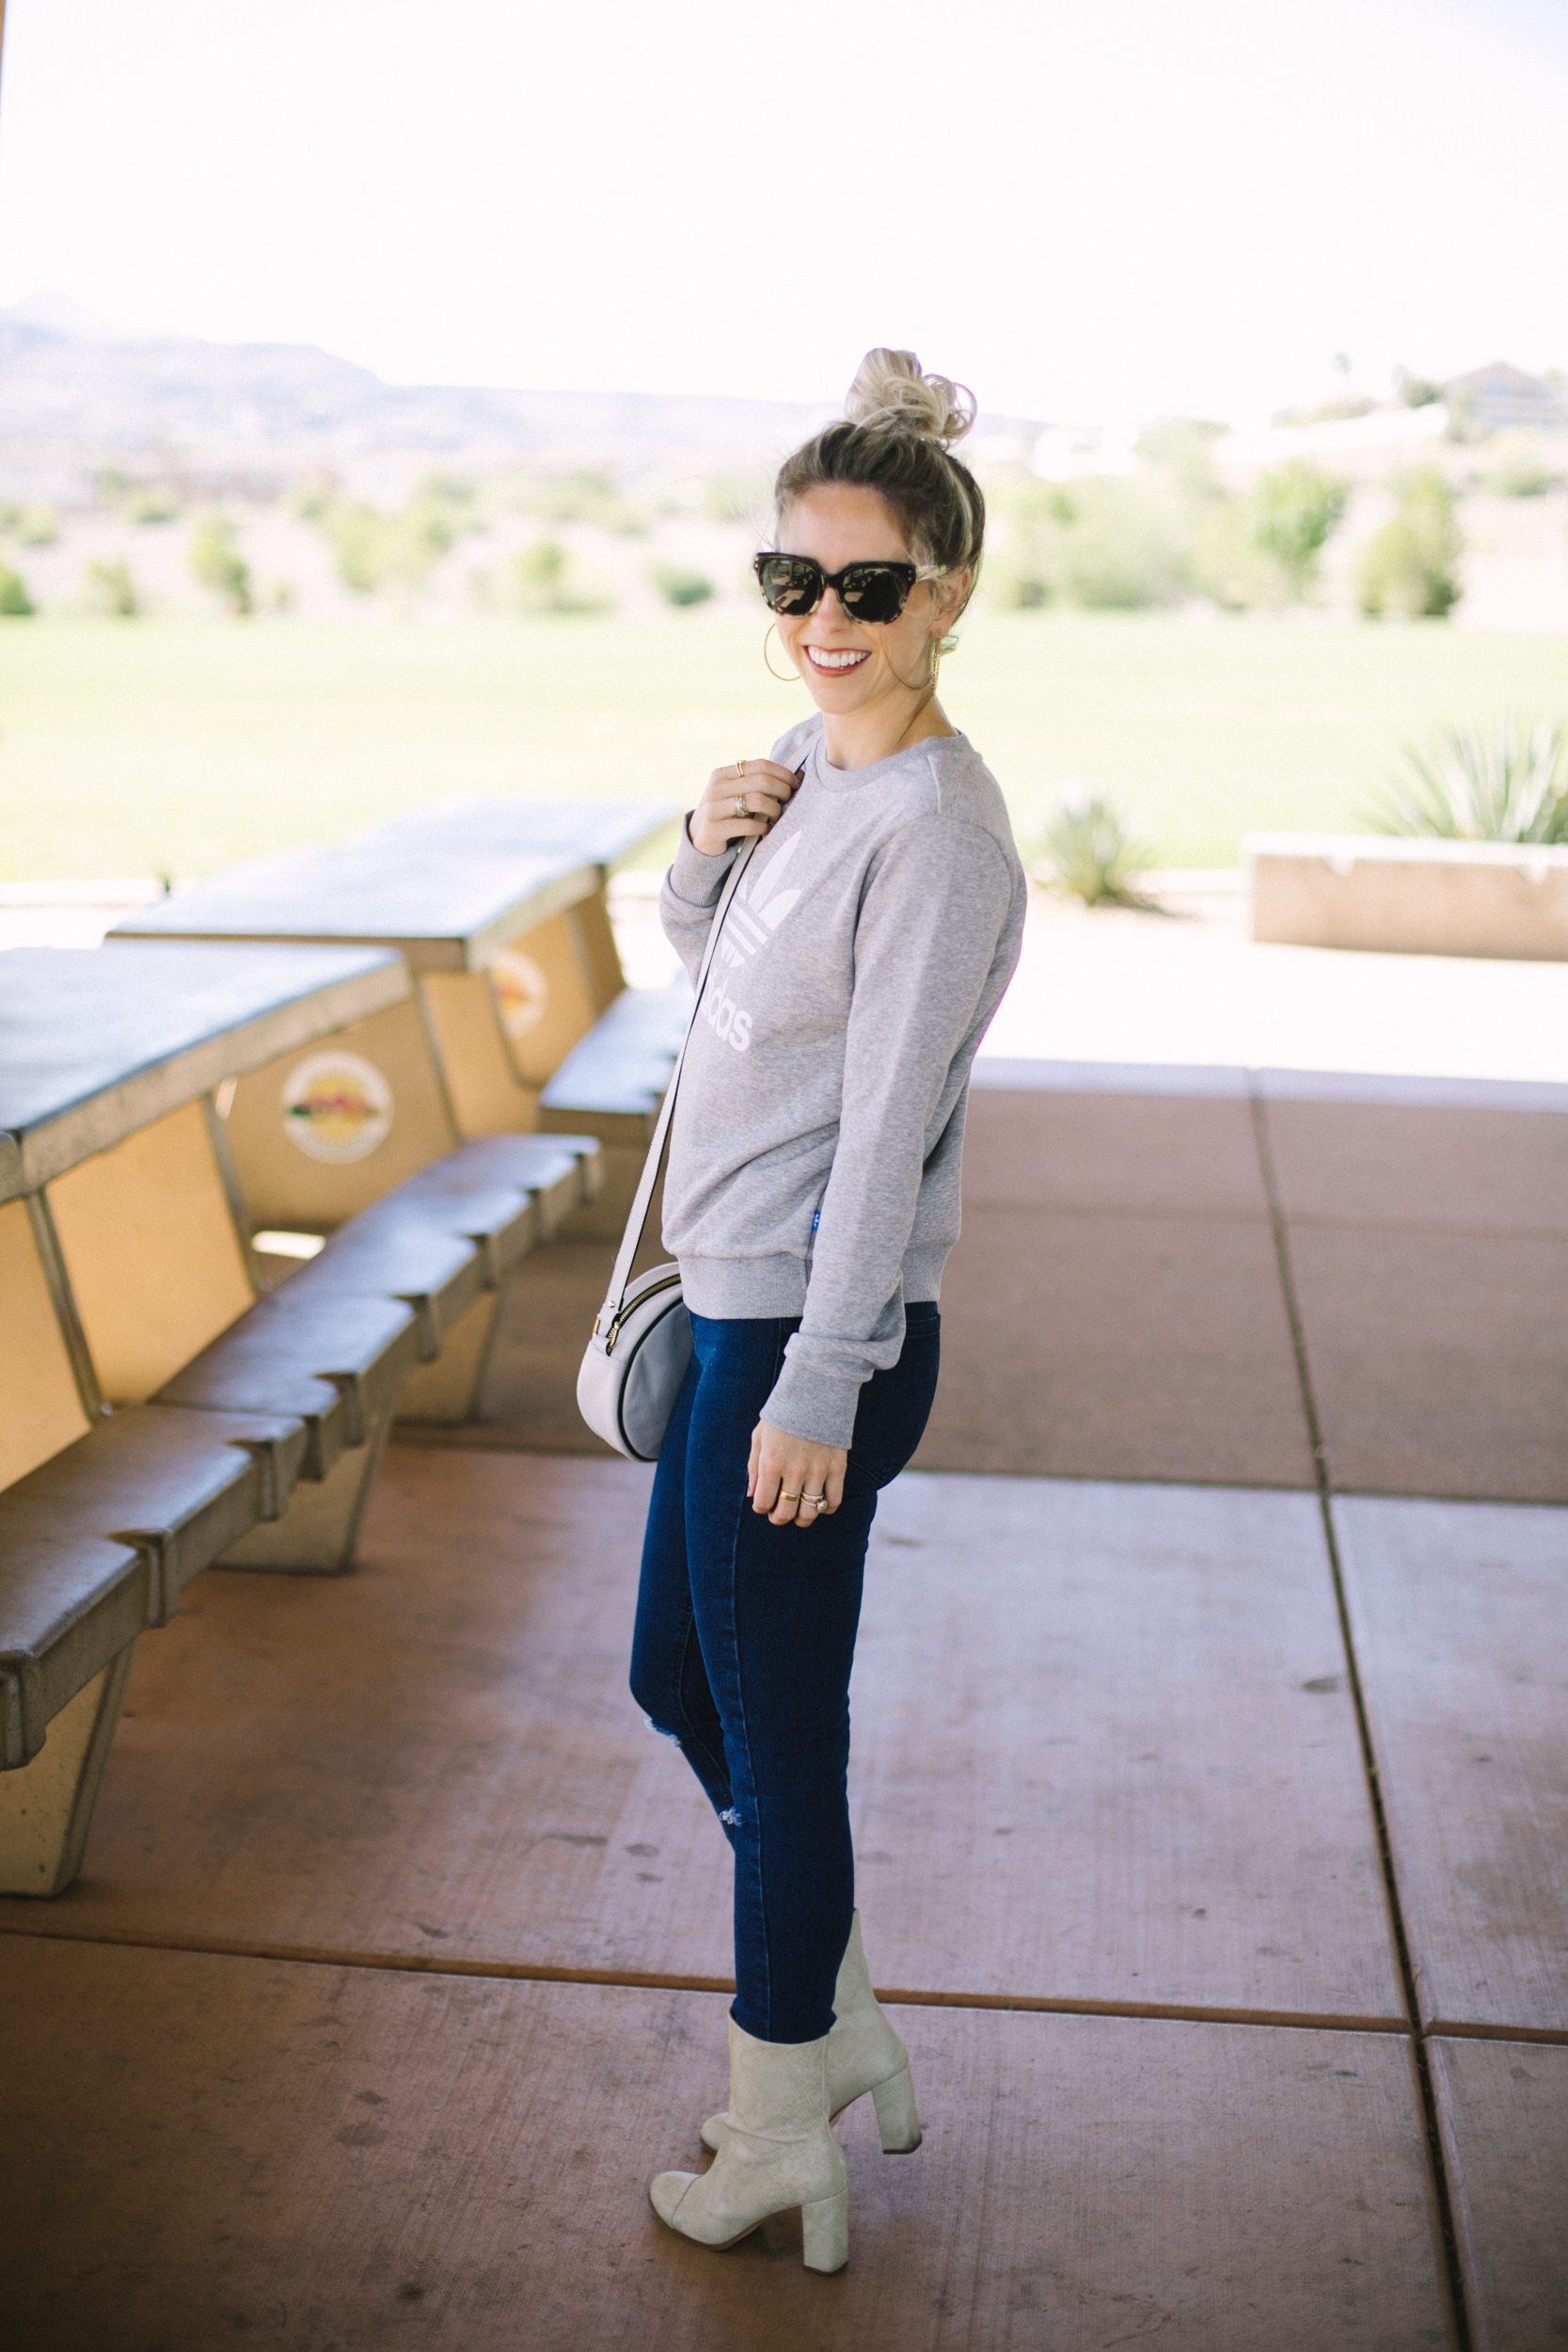 White Boots & All Things Fall by Las Vegas fashion bloggers Life of a Sister